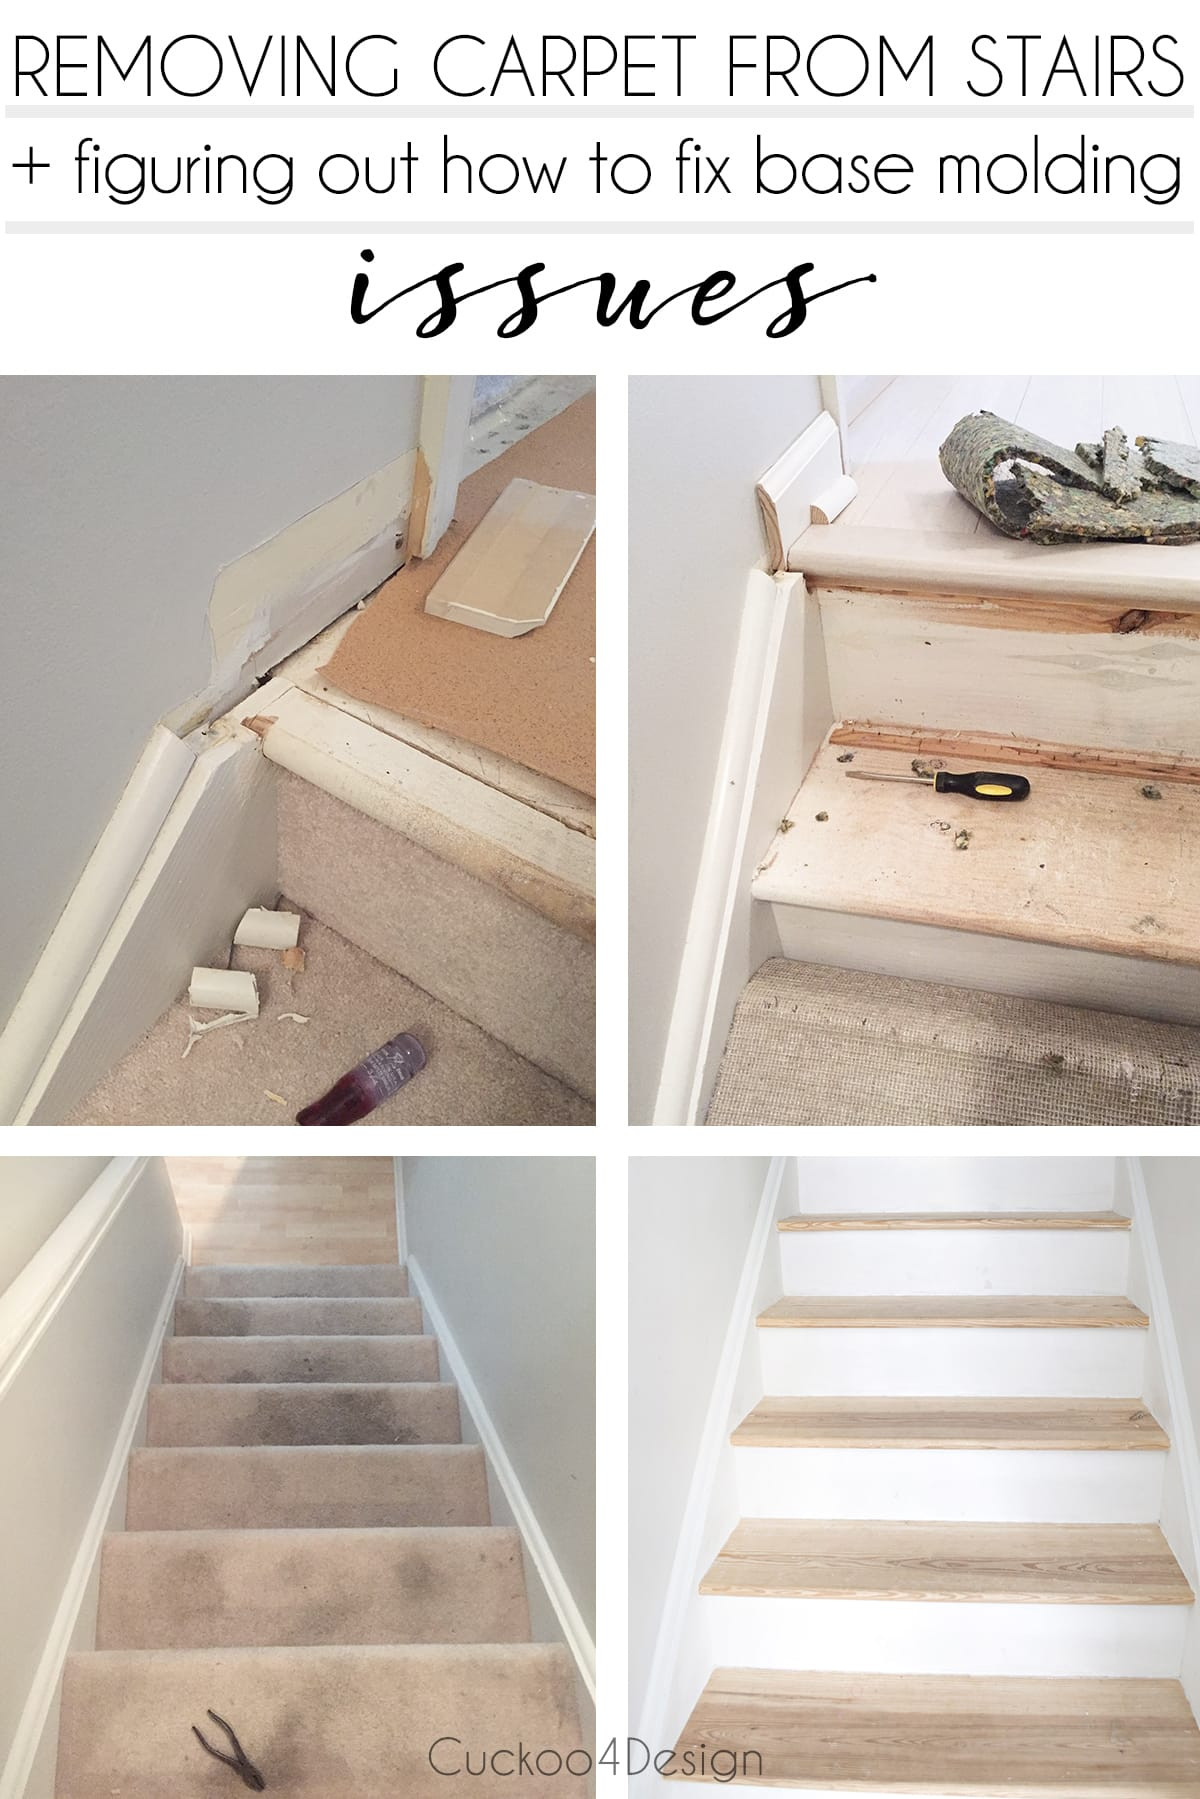 filling small gaps in hardwood floors of removing carpet from stairs cuckoo4design within removing carpet from stairs carpet to wood stairs carpet stairs to wood removing